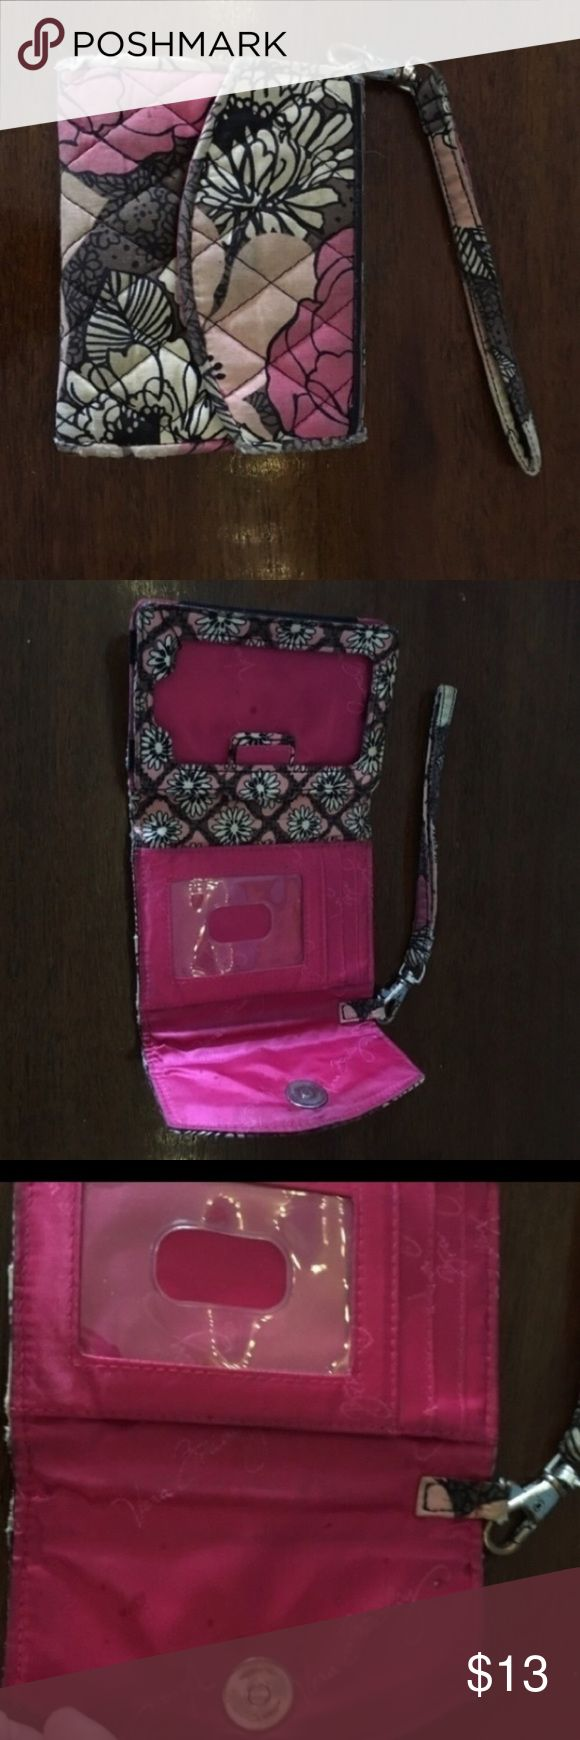 Pink Floral Mocha Rouge Vera Bradley Wristlet Cute wristlet that fits an iPhone 4 or 4s. It can also fit an iPhone 5, 5s, 5c, or 6SE without a case. There are signs of wear as shown in pictures but still has a lot of life left in it! Vera Bradley Accessories Phone Cases